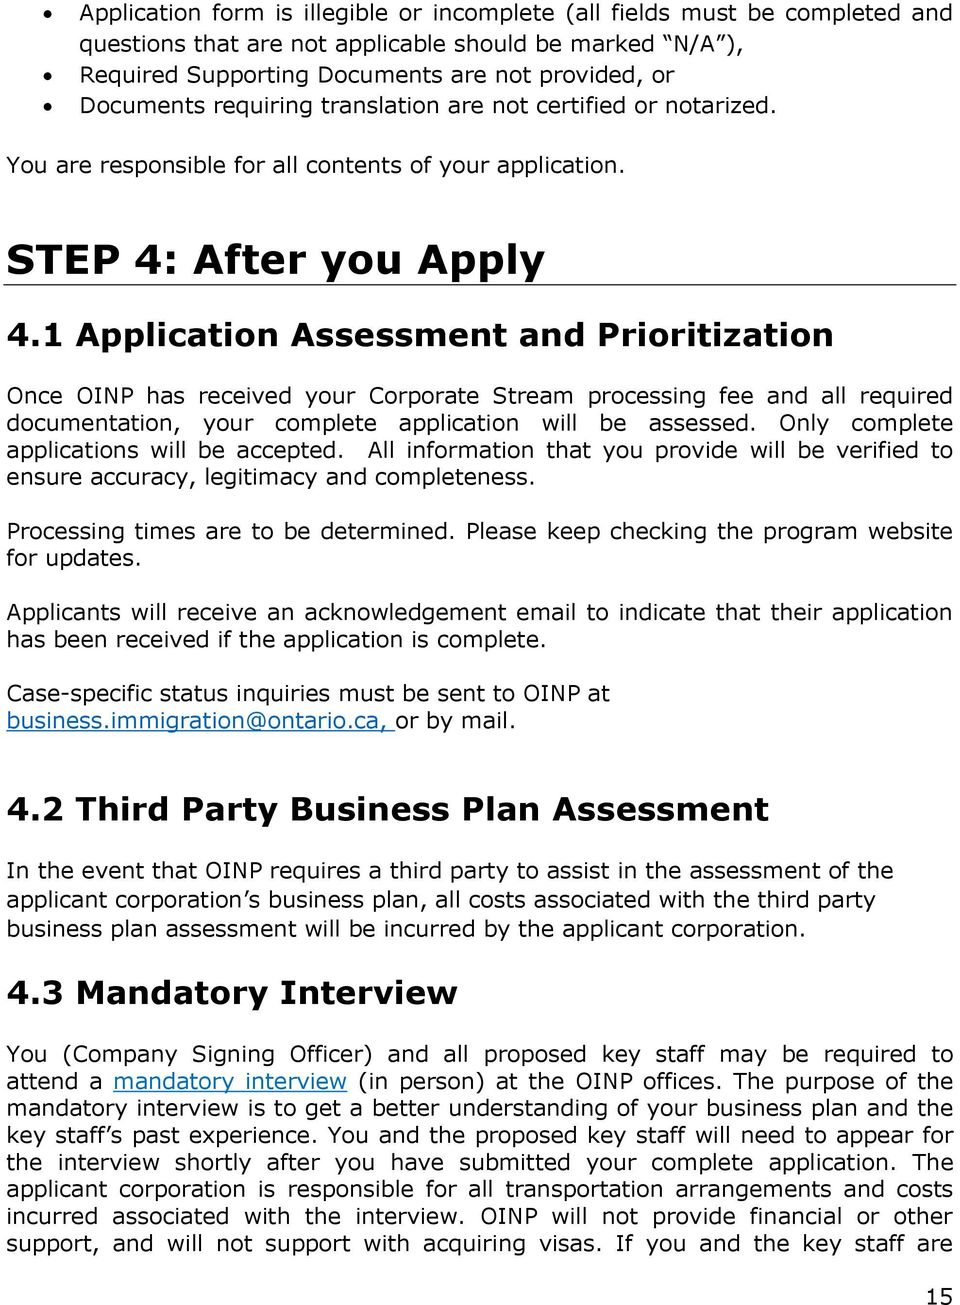 ontario immigrant nominee program corporate stream guide pdf 1 application assessment and prioritization once oinp has received your corporate stream processing fee and all